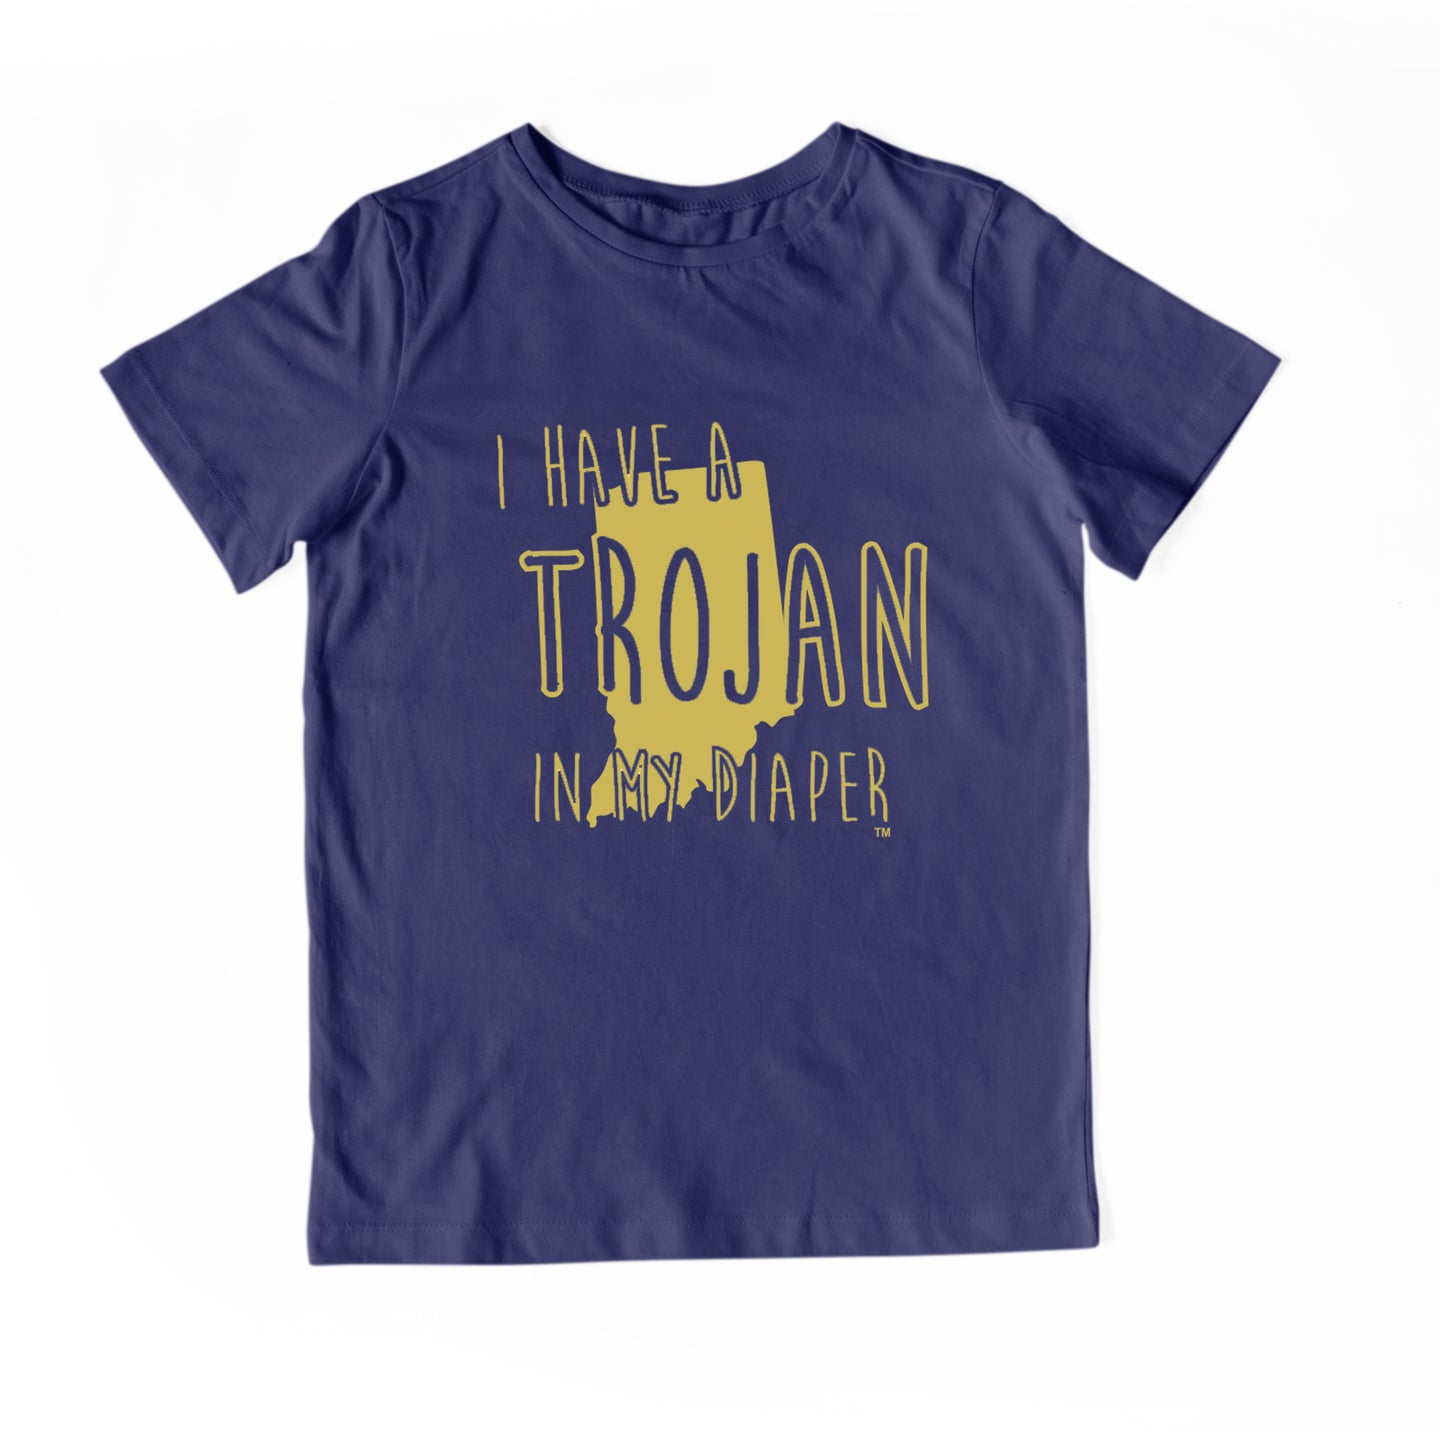 I HAVE A TROJAN IN MY DIAPER Child Tee